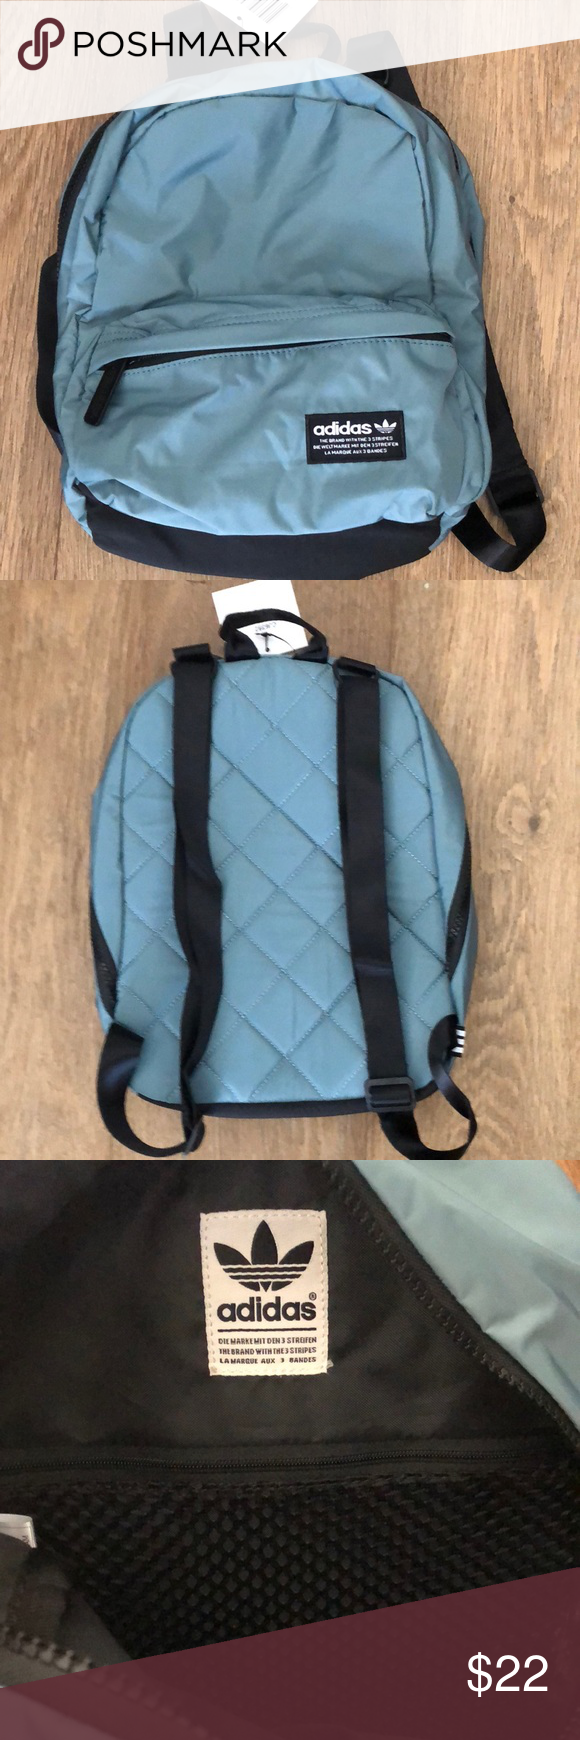 04f4ea5fccb adidas Originals National compact backpack Style  CJ6392 compact backpack  in Raw green. Has interior pocket for storage as well as one on front of bag .